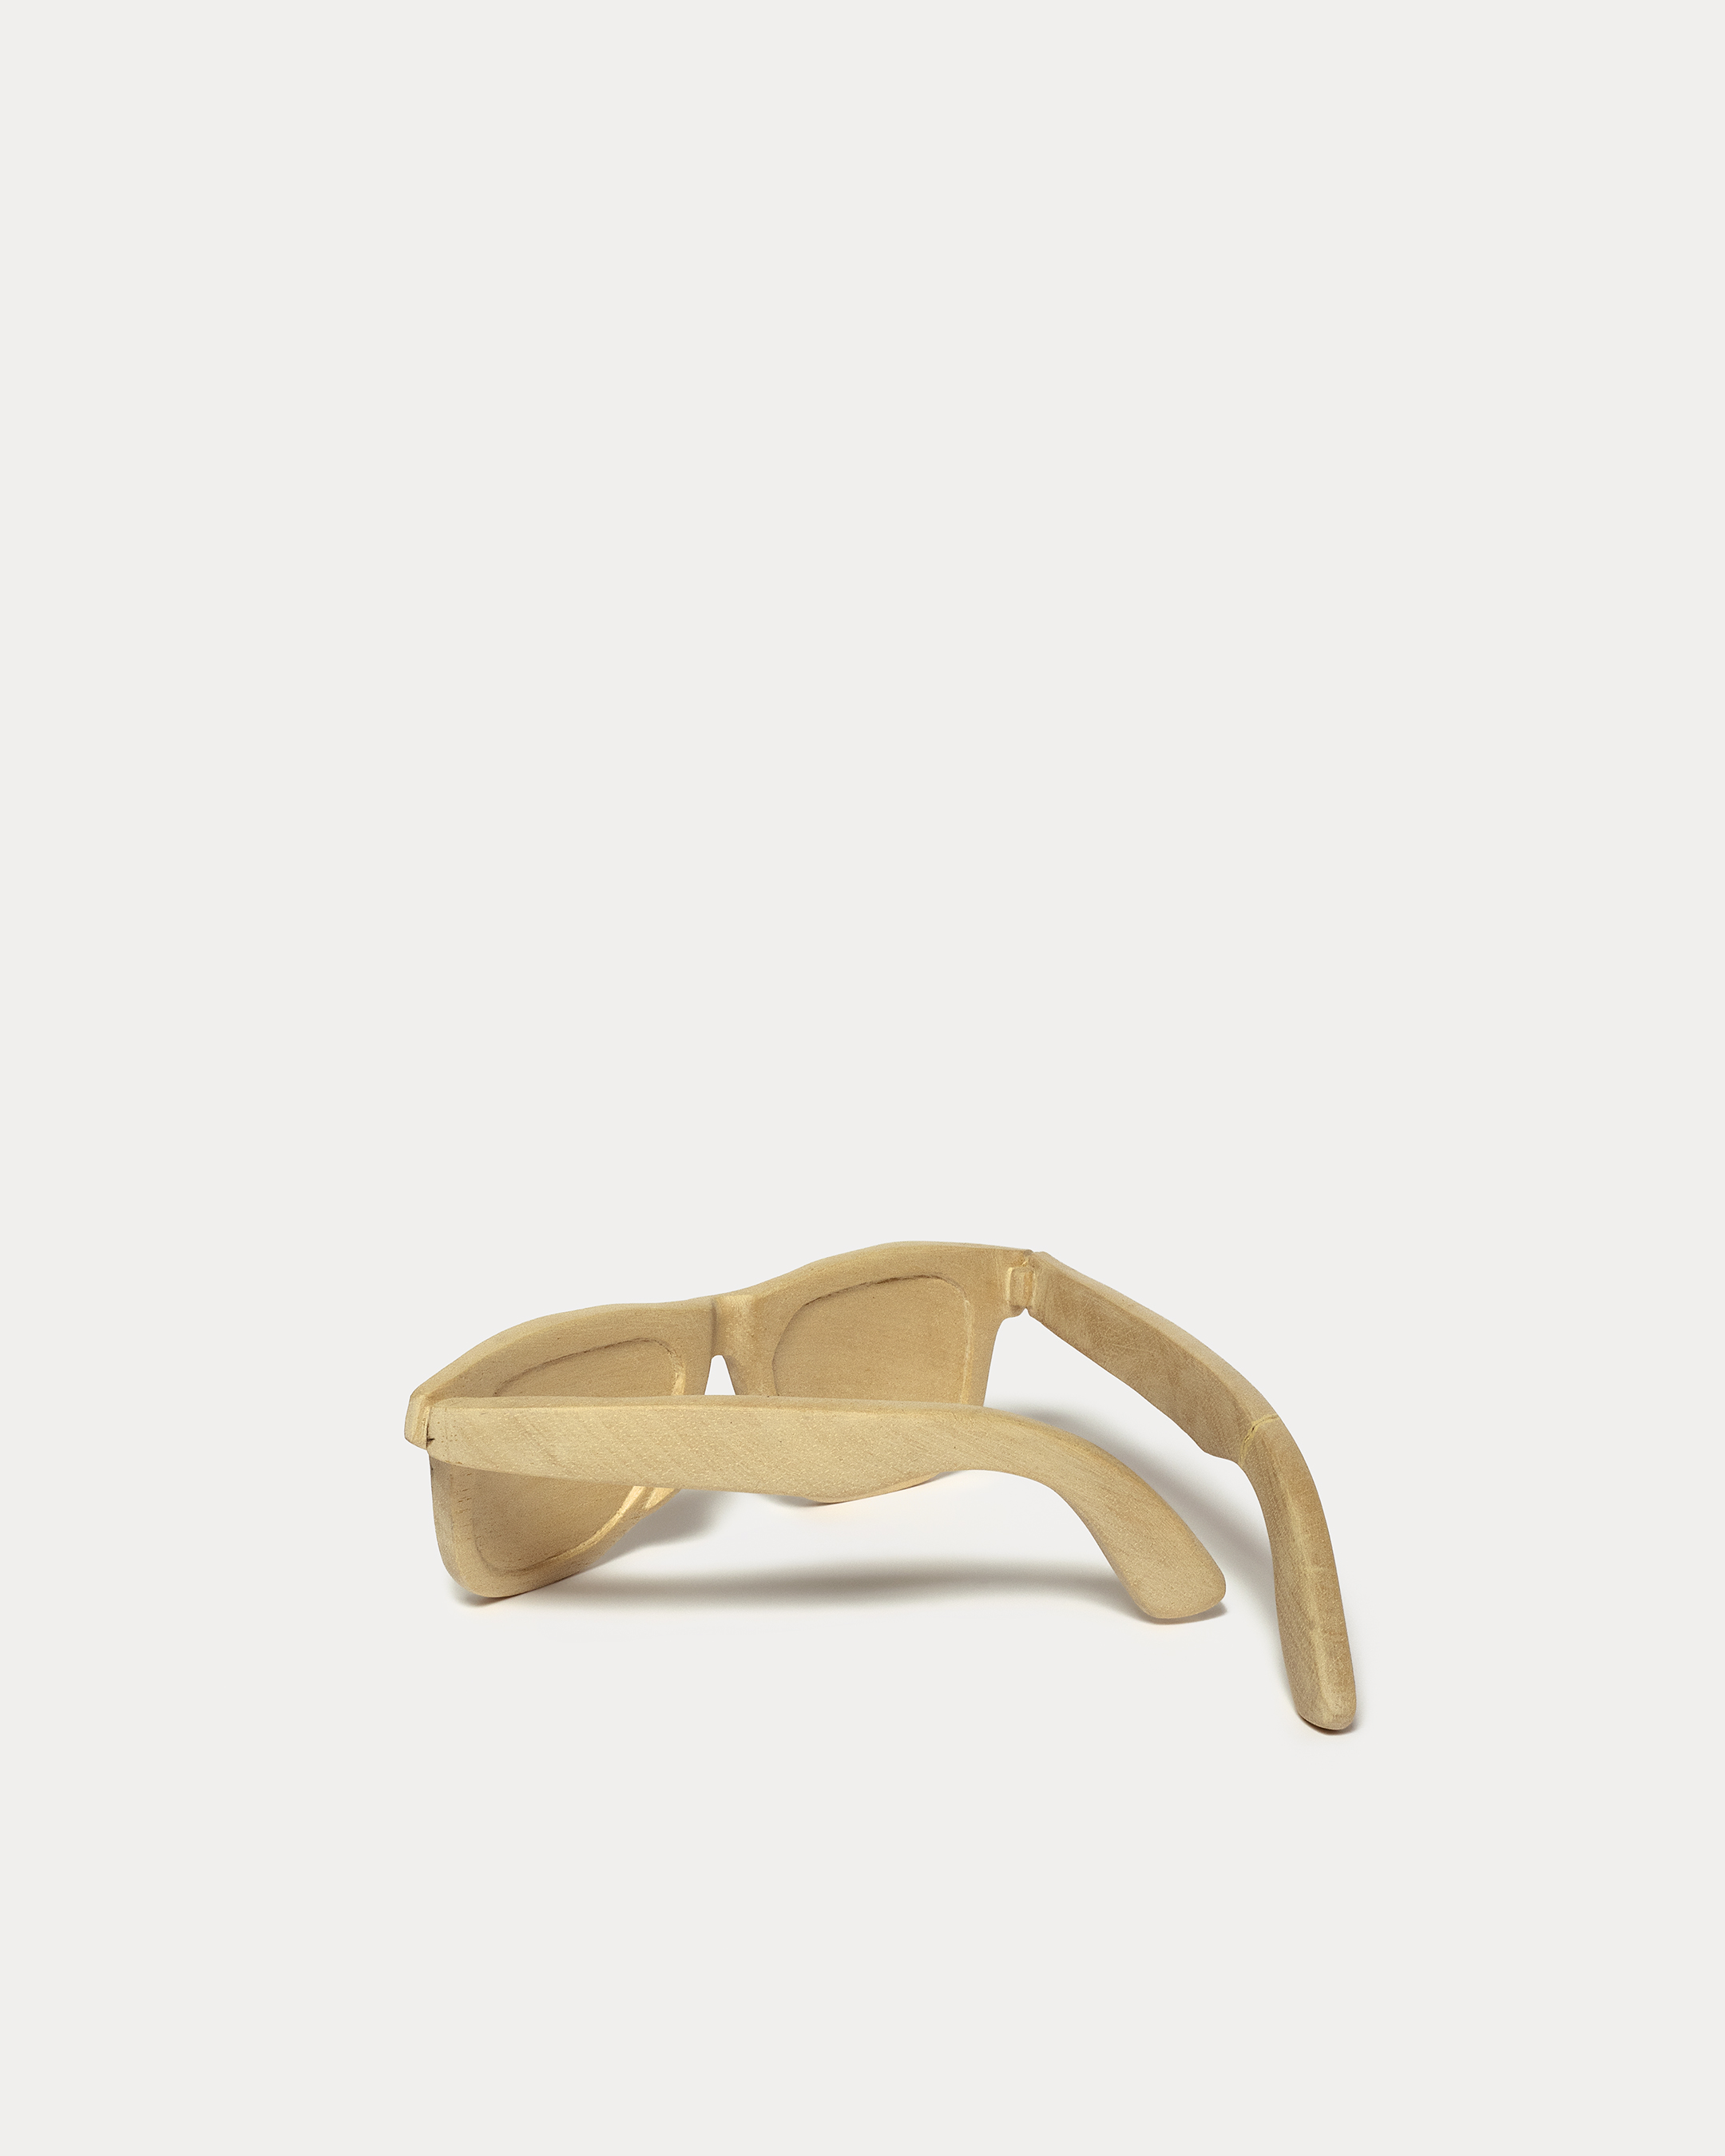 This Is Not A Gun, Sunglasses for DeCarlos Moore,  27 Carving Hours